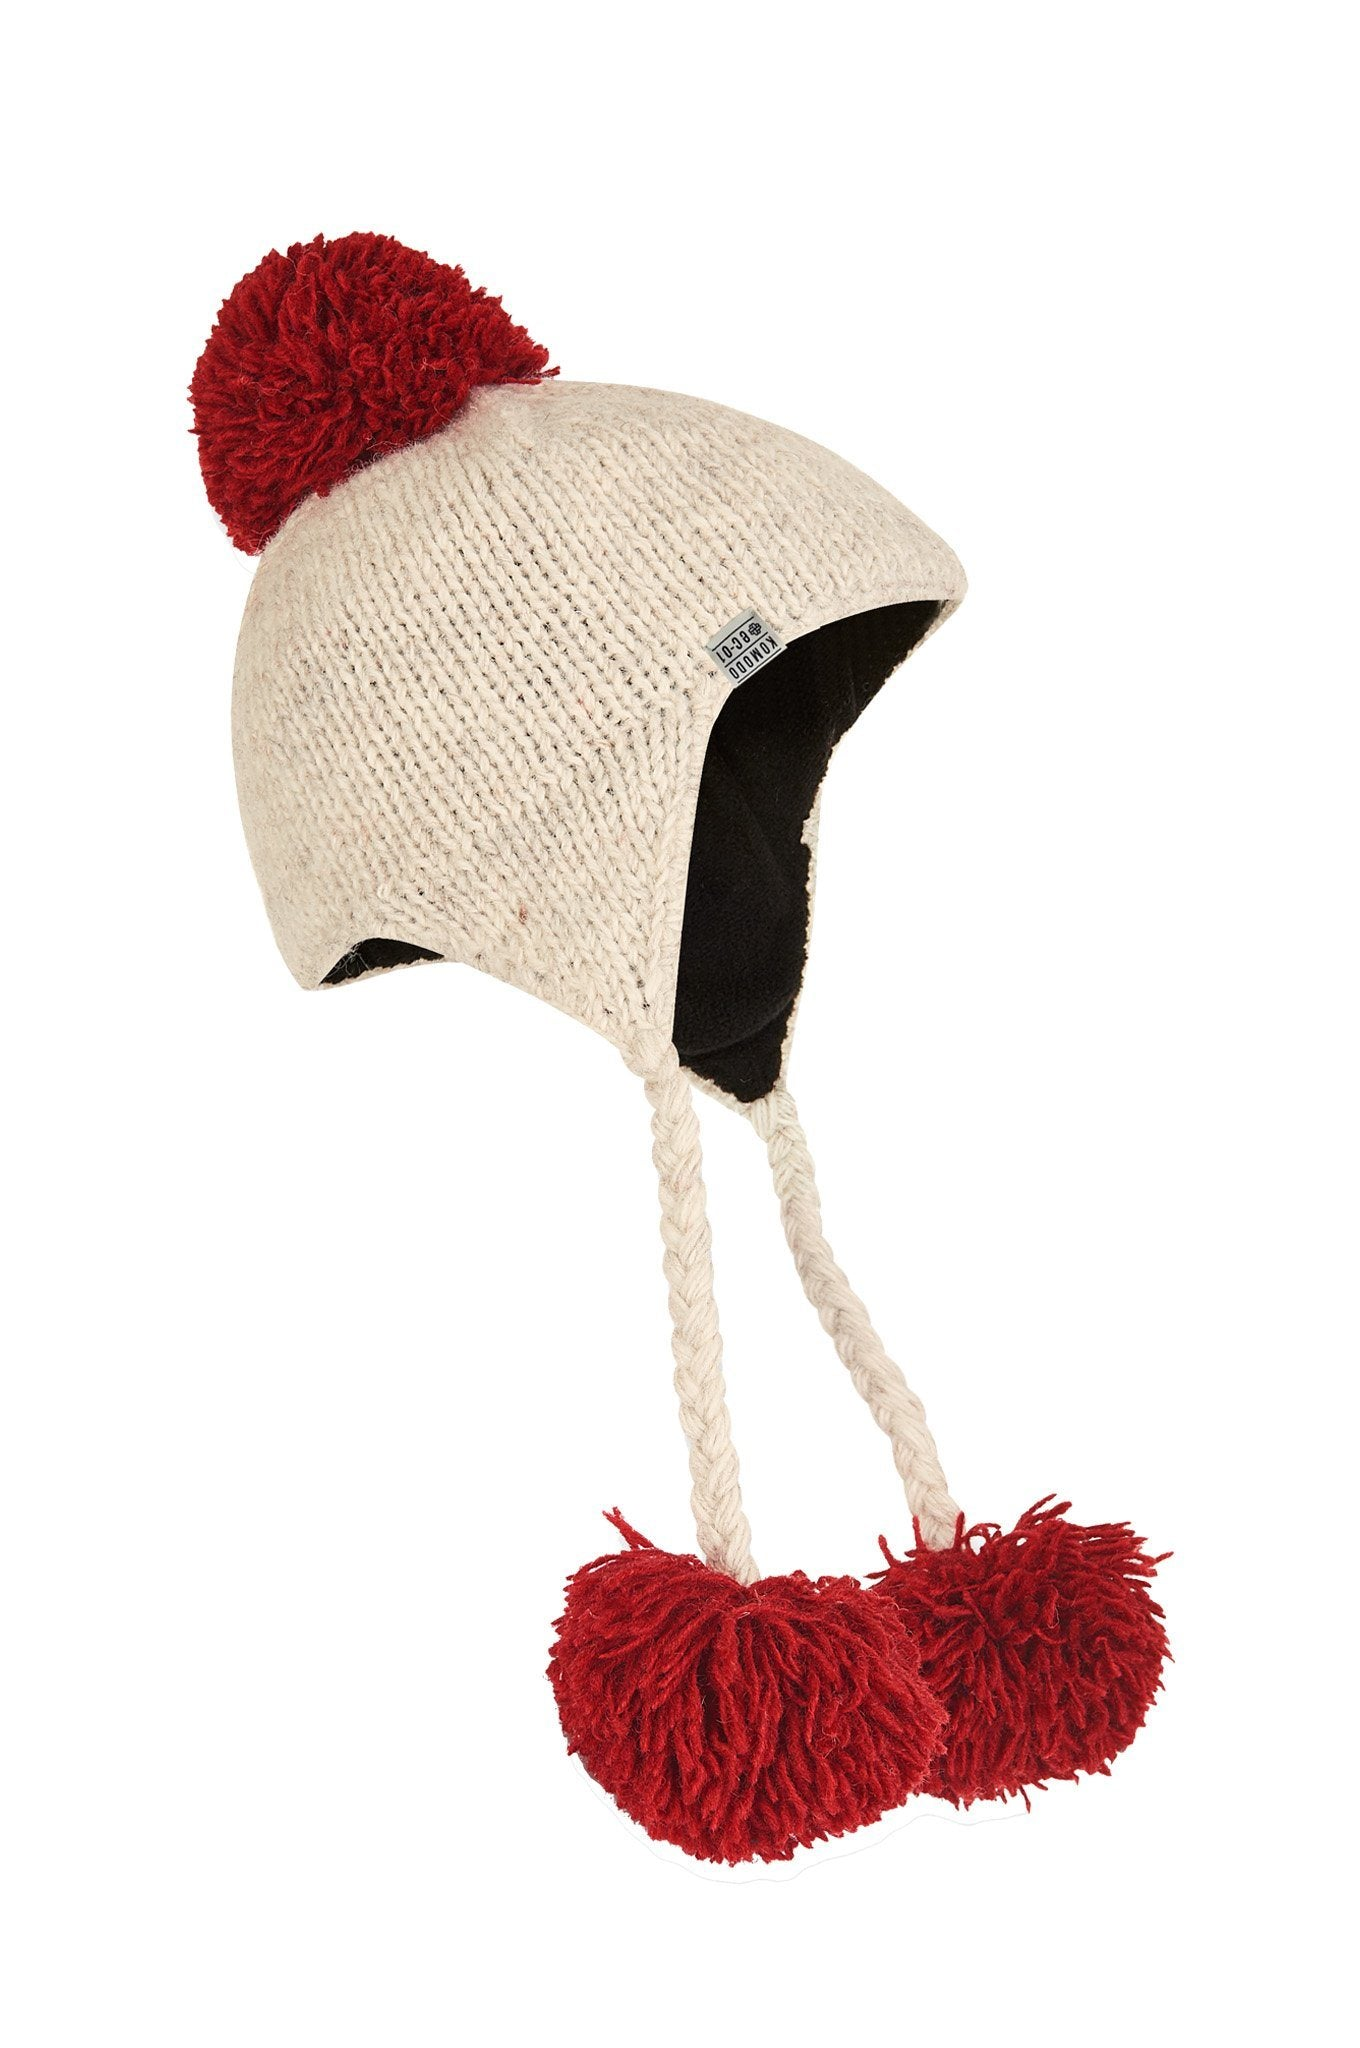 ELO Recycled Wool Hat Oatmeal - Komodo Fashion